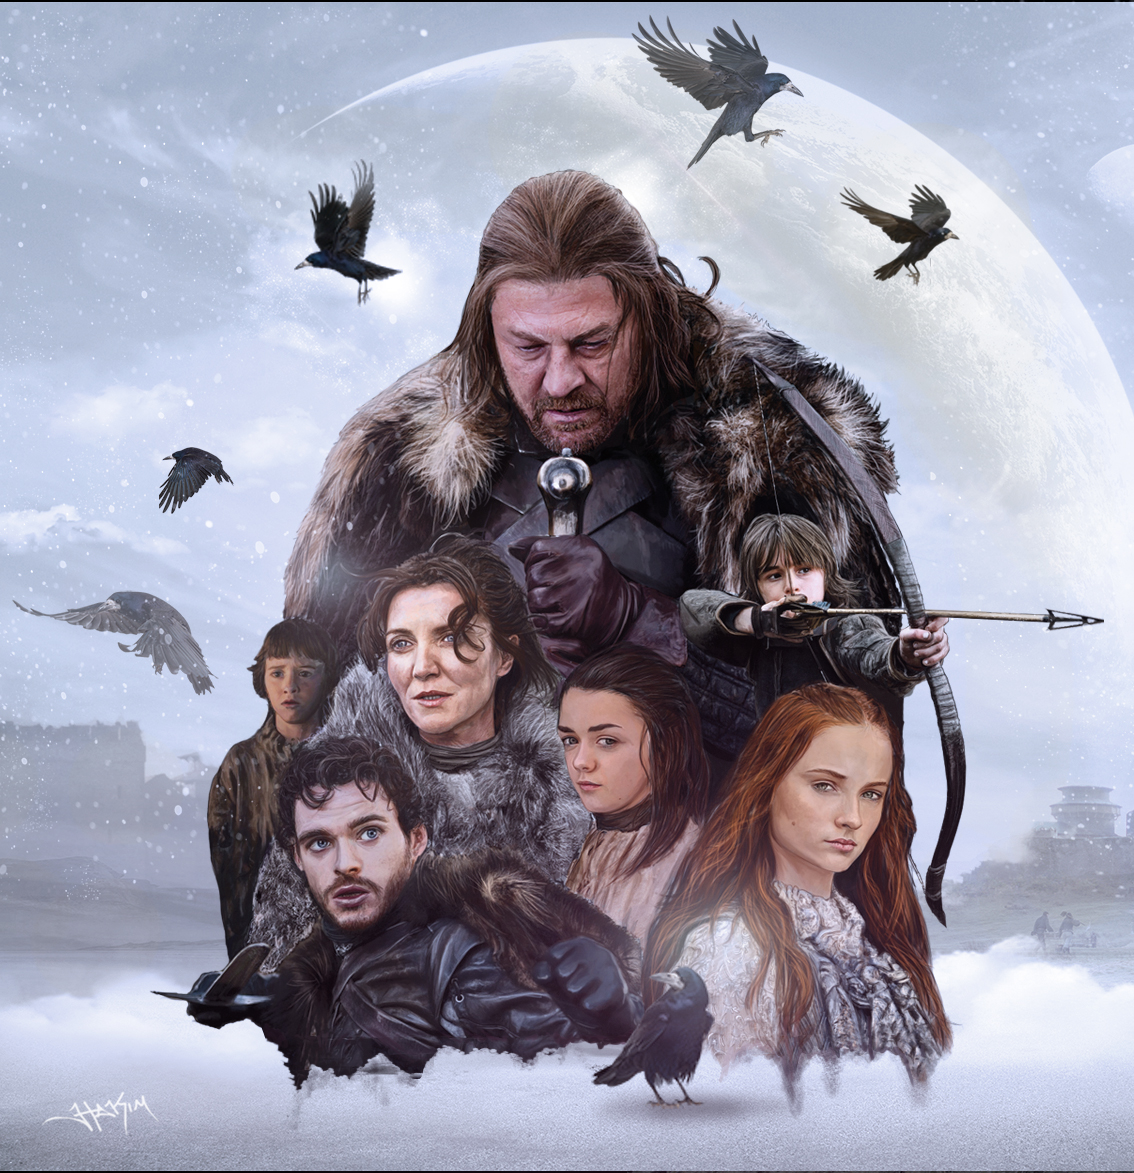 Game of Thrones: House Stark Painting by Hax09